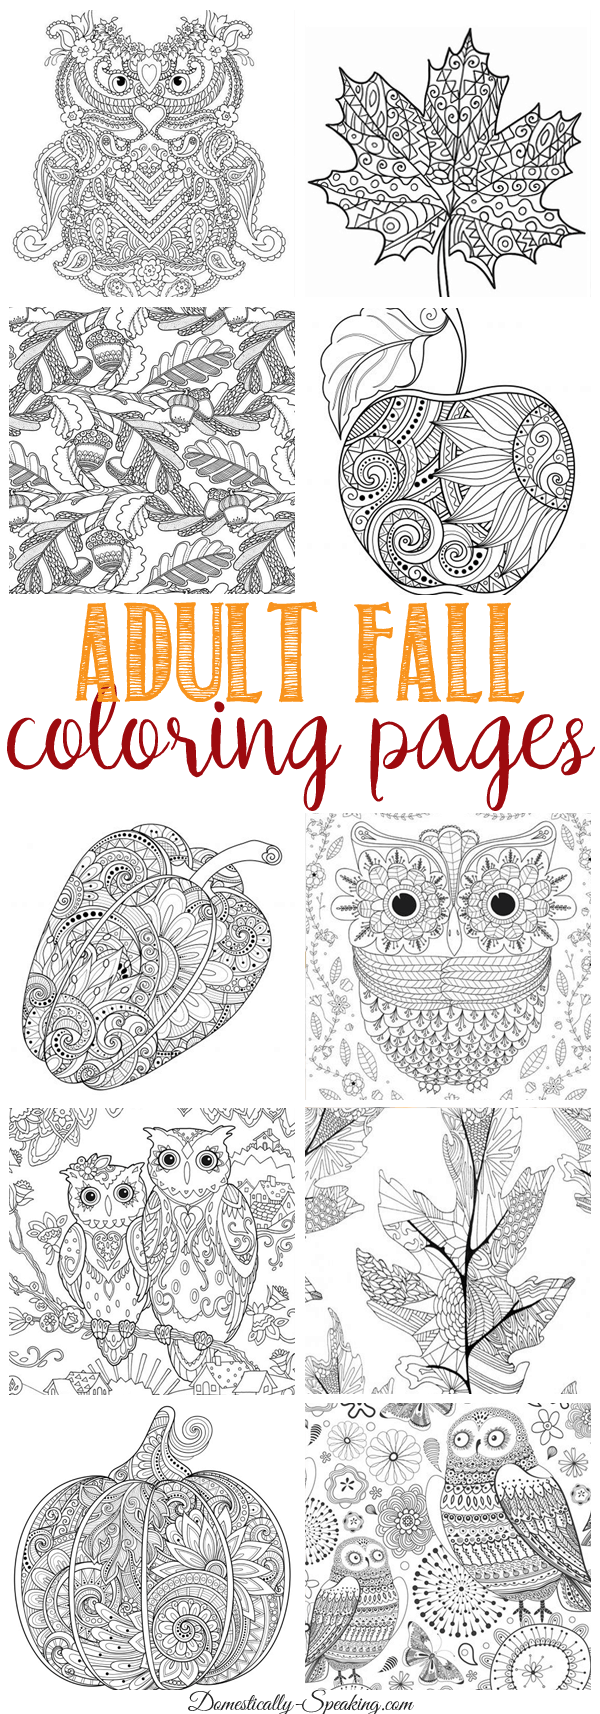 adult-fall-coloring-pages